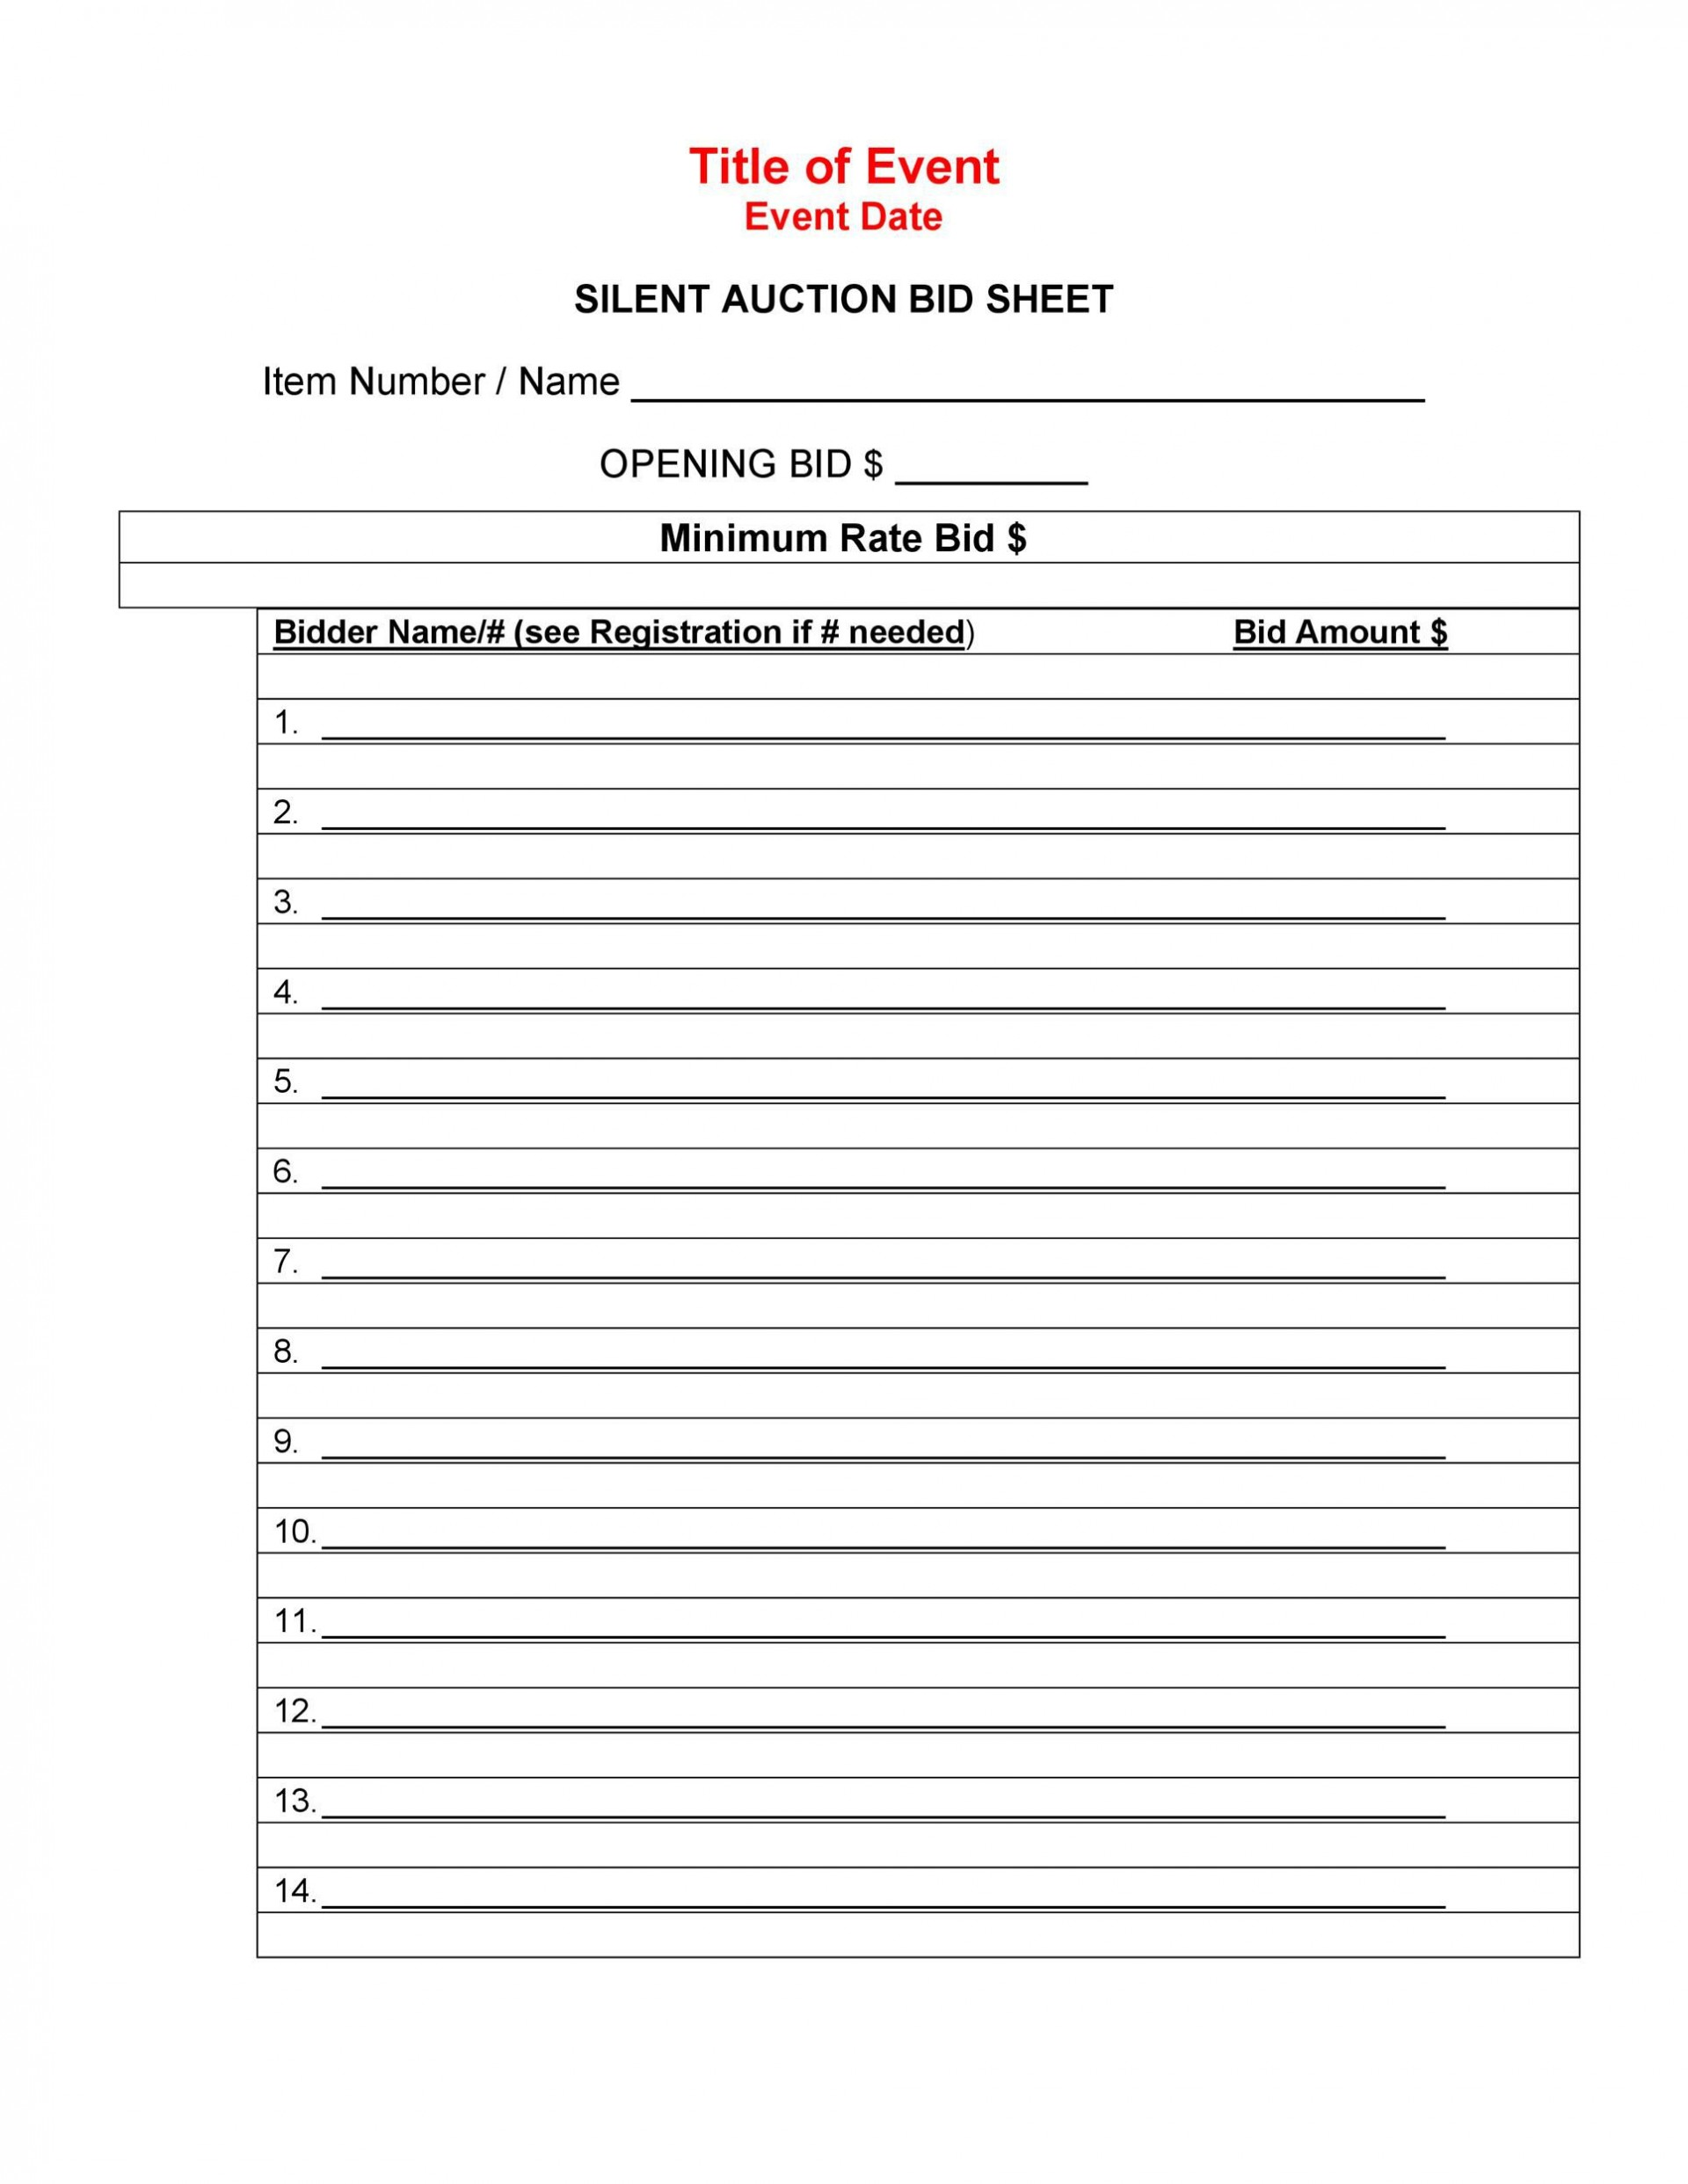 006 Outstanding Silent Auction Bid Sheet Template High Definition  Free Download Sample Microsoft Word1920